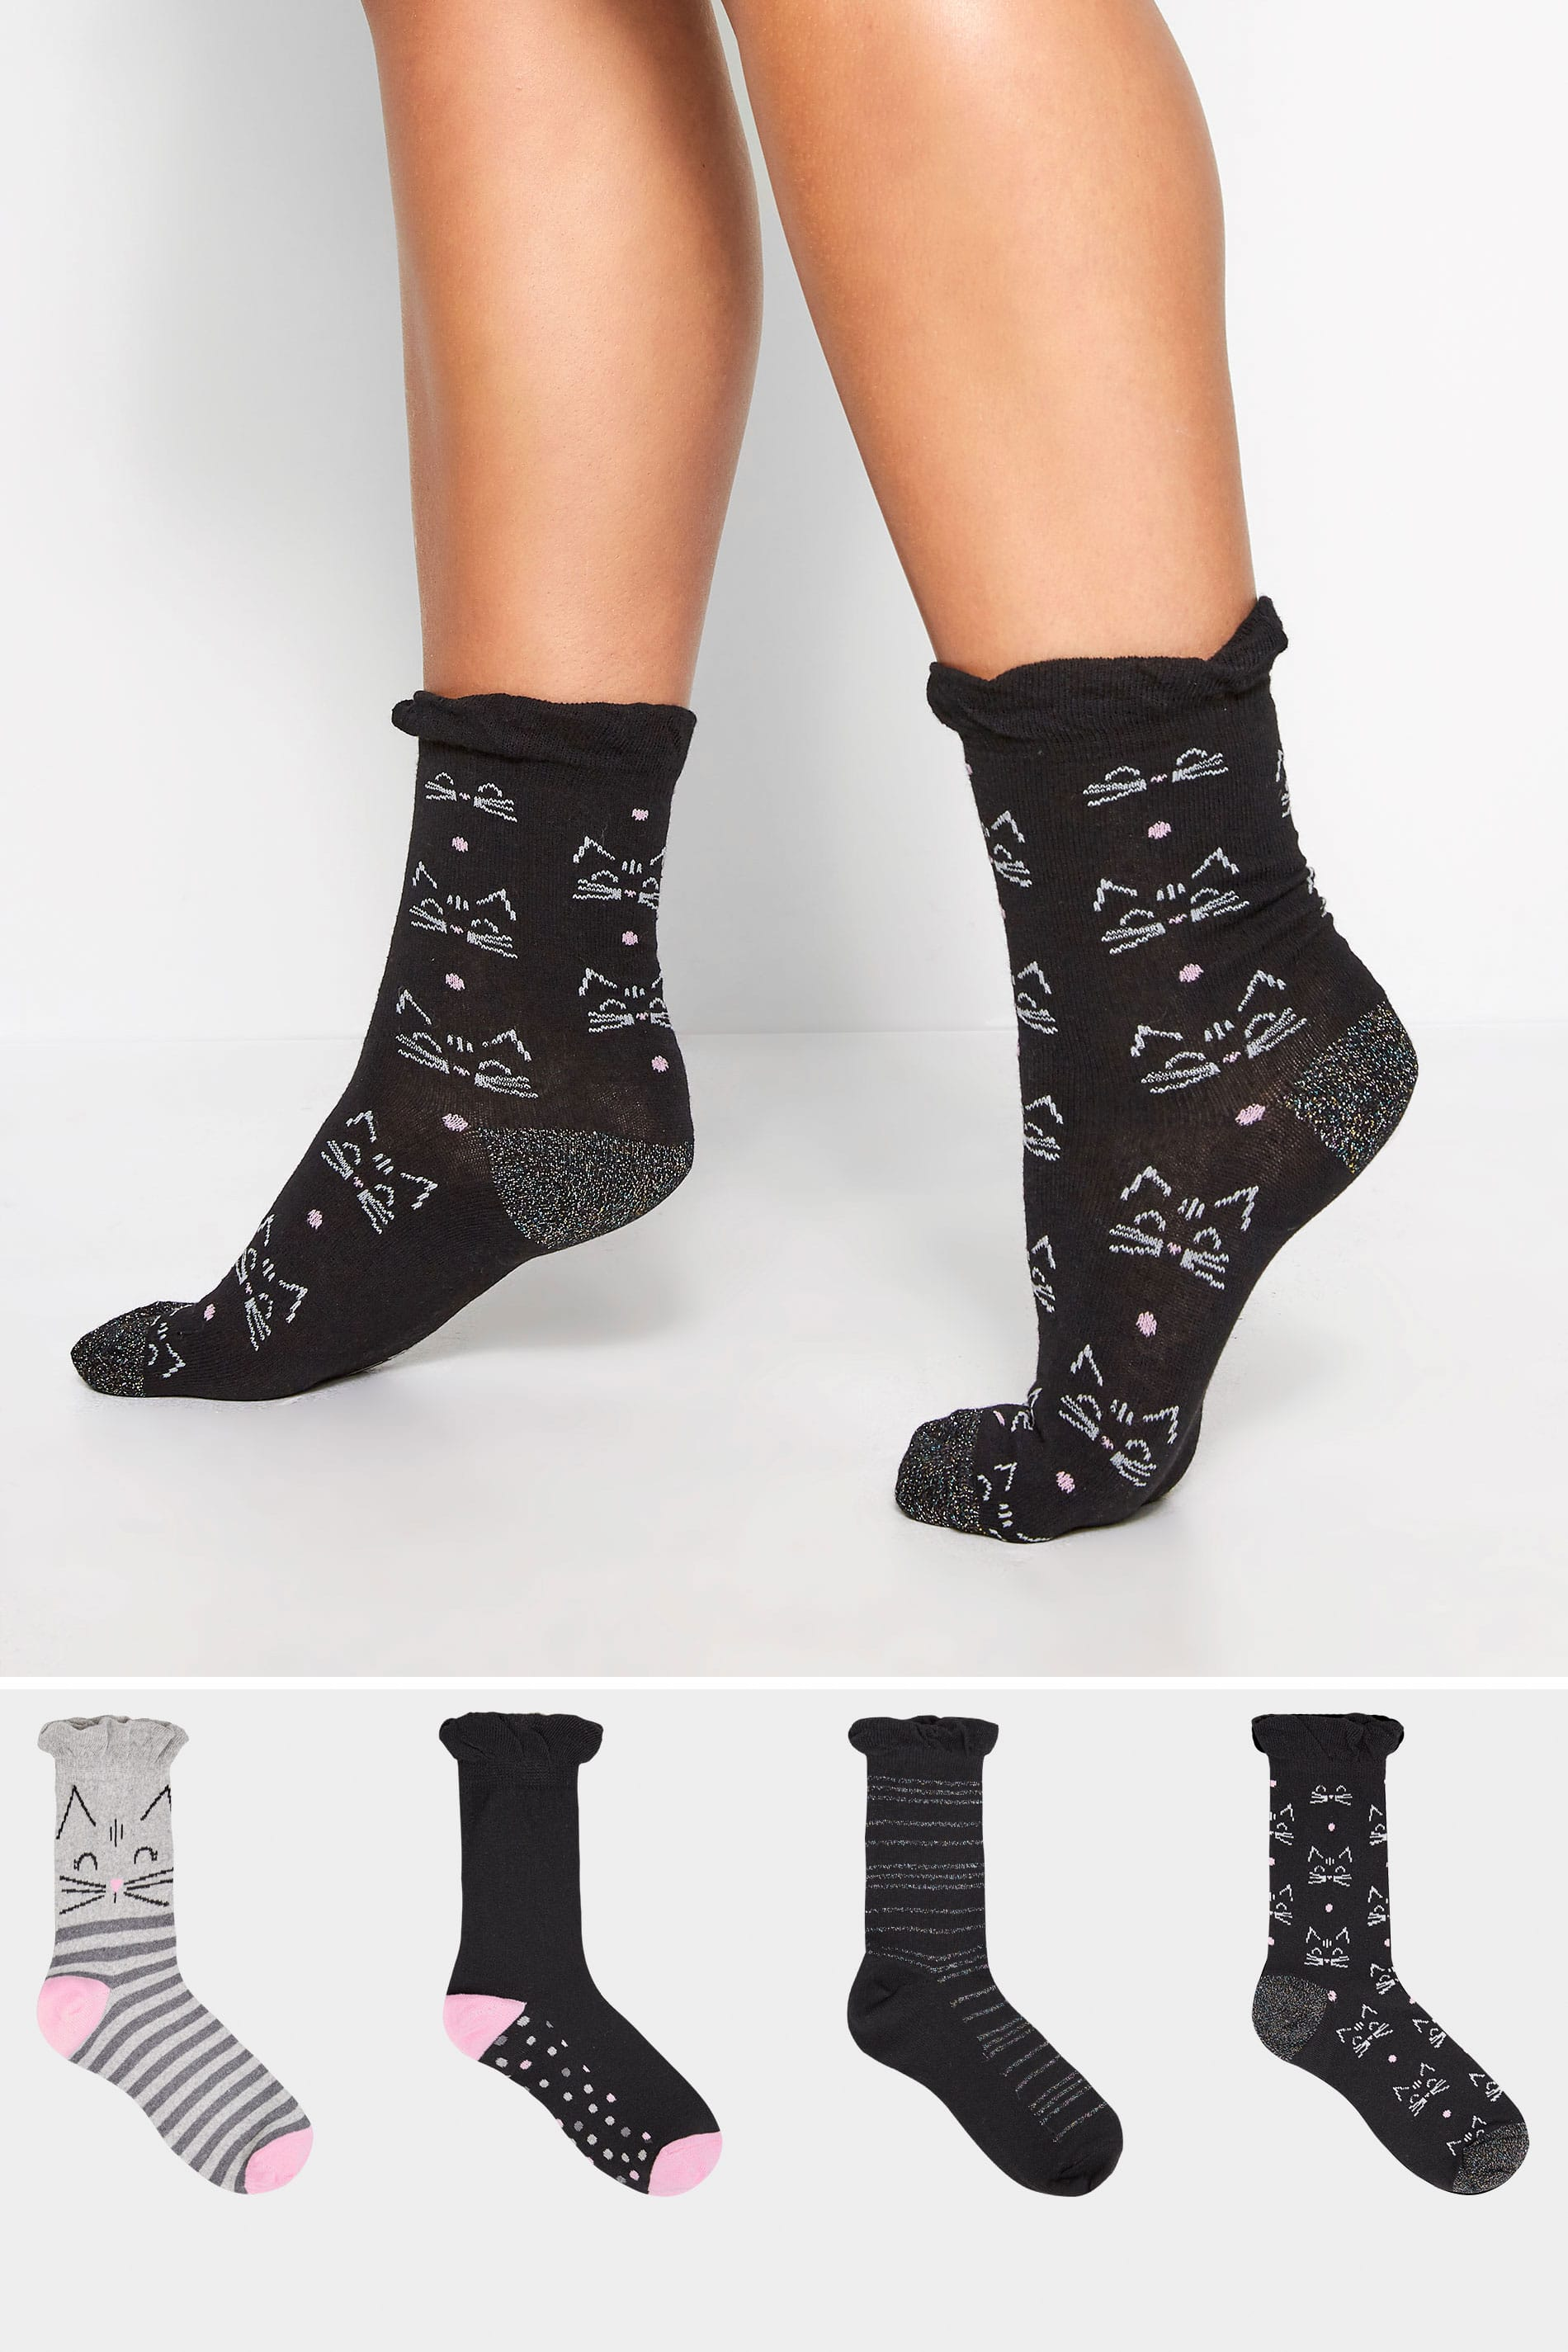 4 PACK Black Glitter Cat Socks